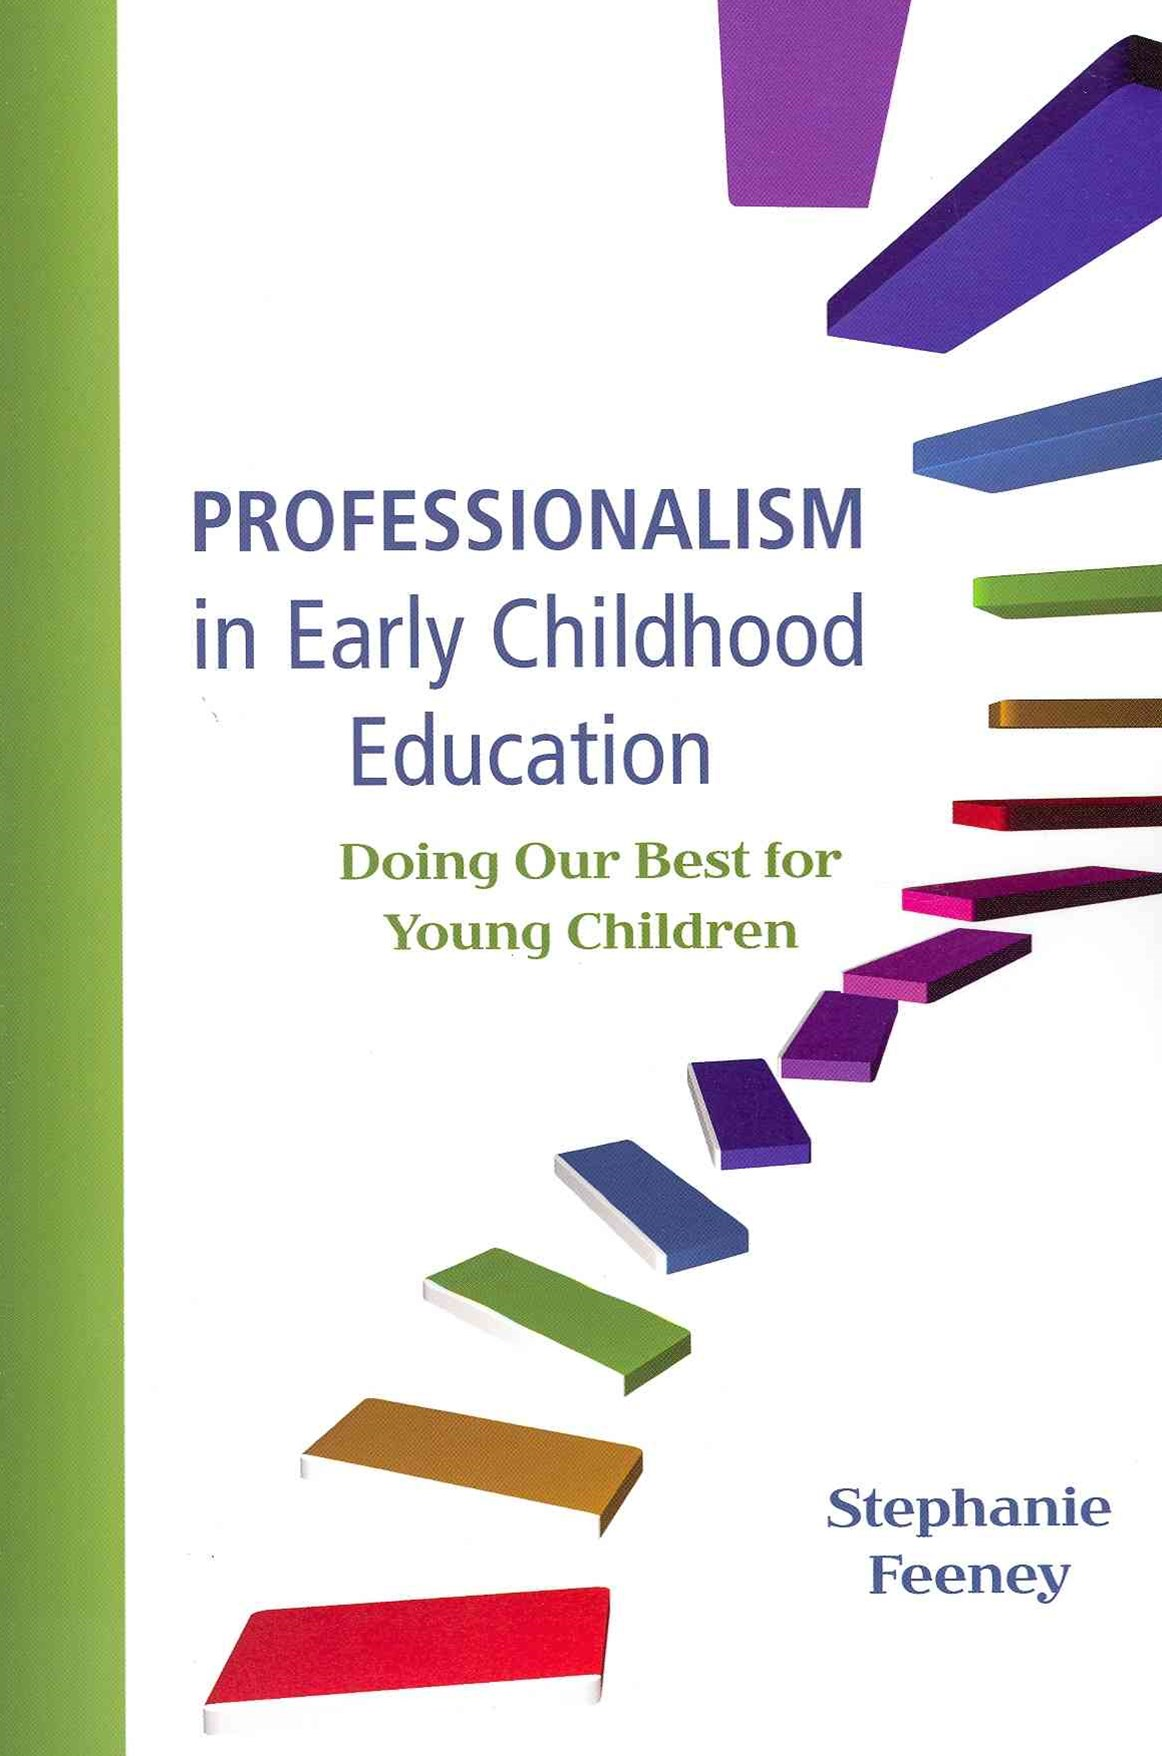 Professionalism in Early Childhood Education